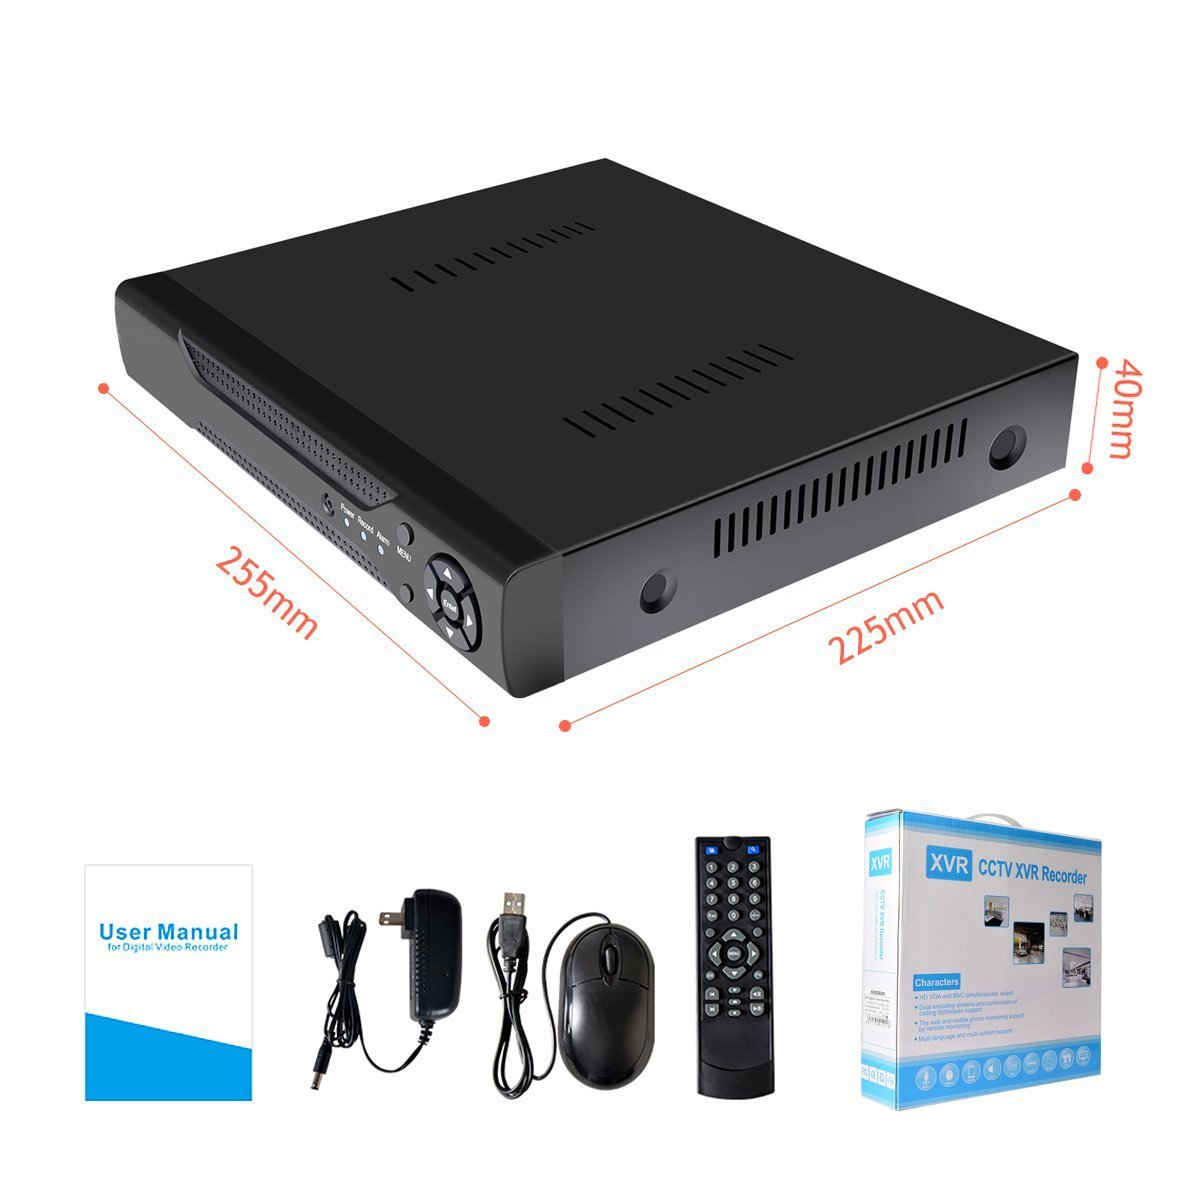 16 Channels DVR Recorder Hybrid DVR H.264 CCTV Security Camera System Digital Video Recorder(No hard drive included) by Abowone (Image #7)